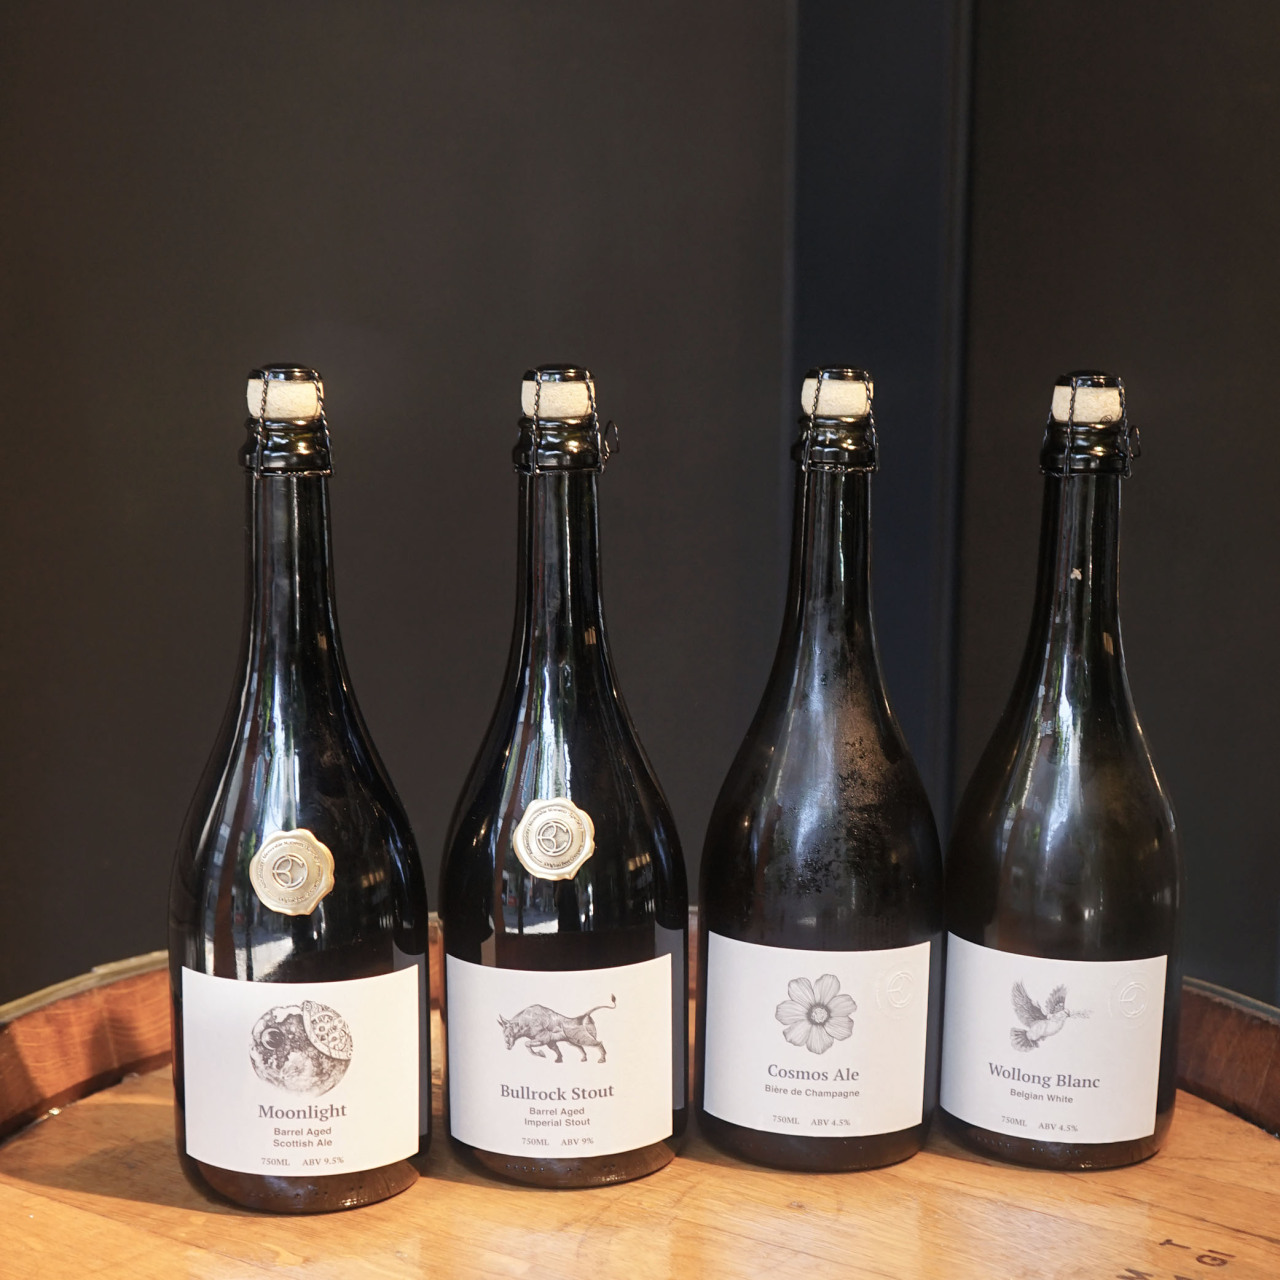 Original Beer Company has released four beers so far, including two barrel-aged brews and one biere de Champagne. (OBC)